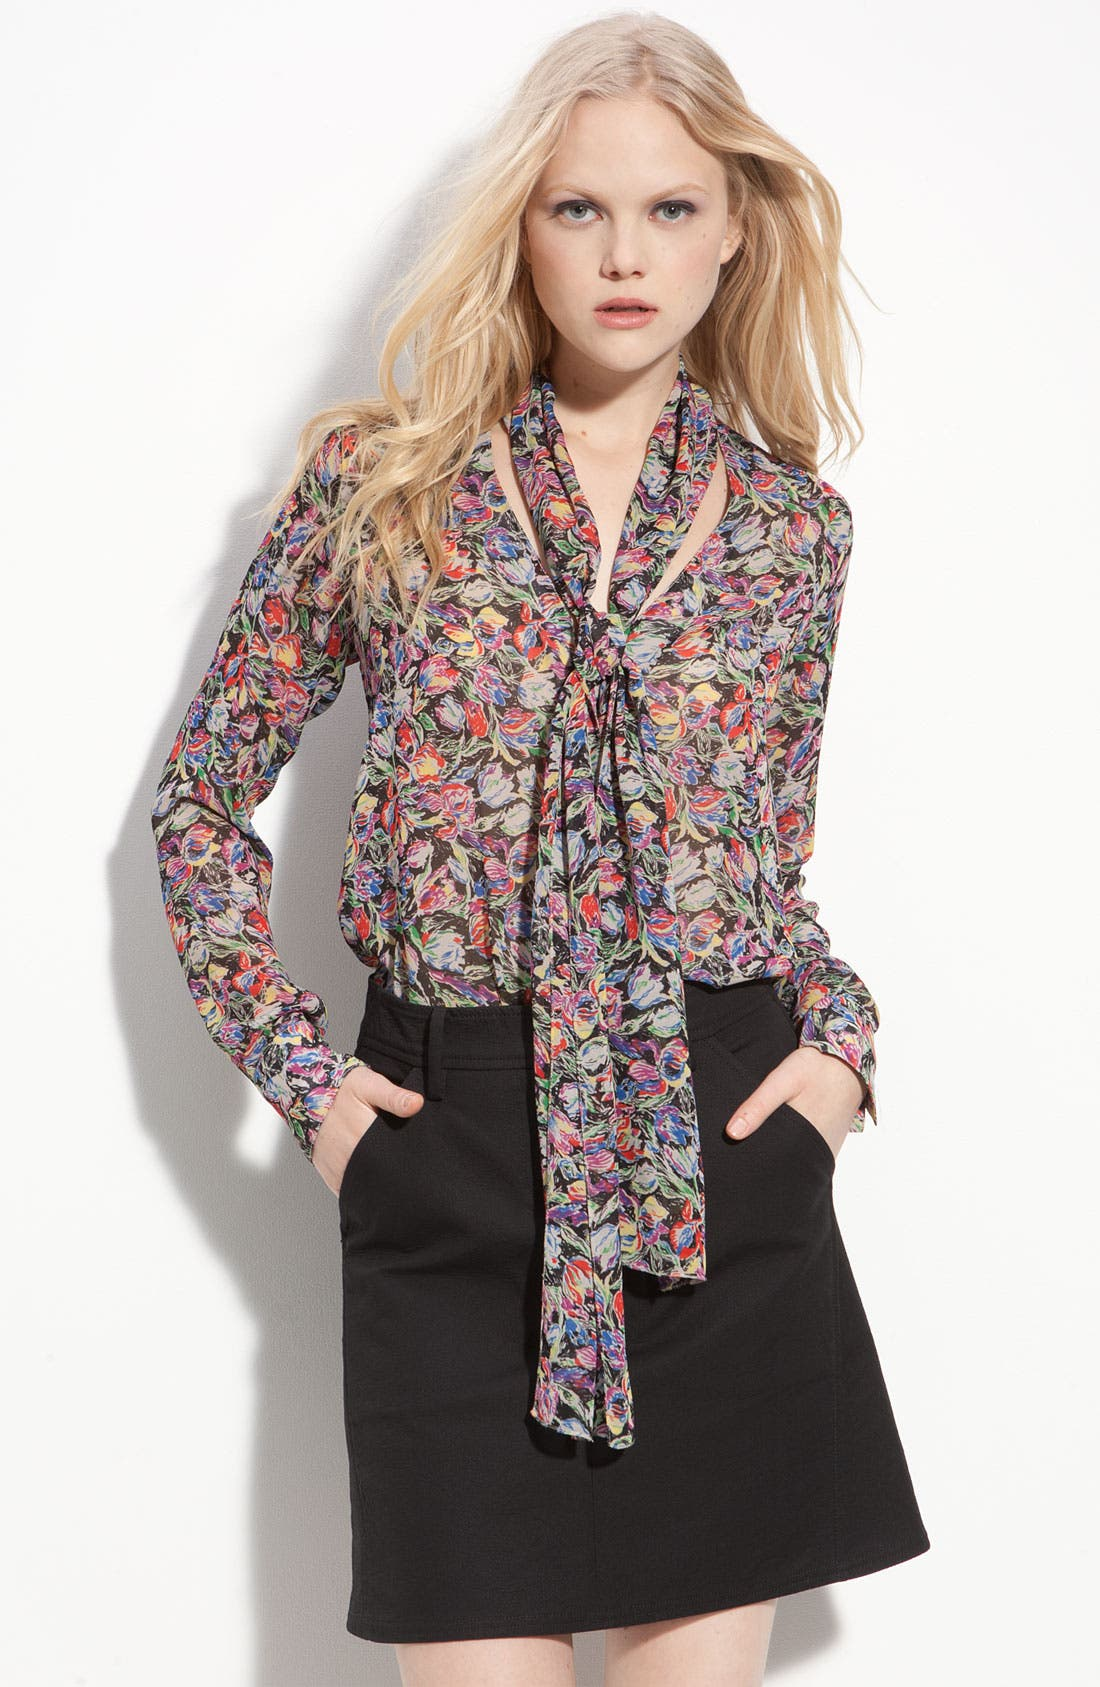 Alternate Image 1 Selected - Derek Lam 10 Crosby Sheer Floral Tie Neck Blouse